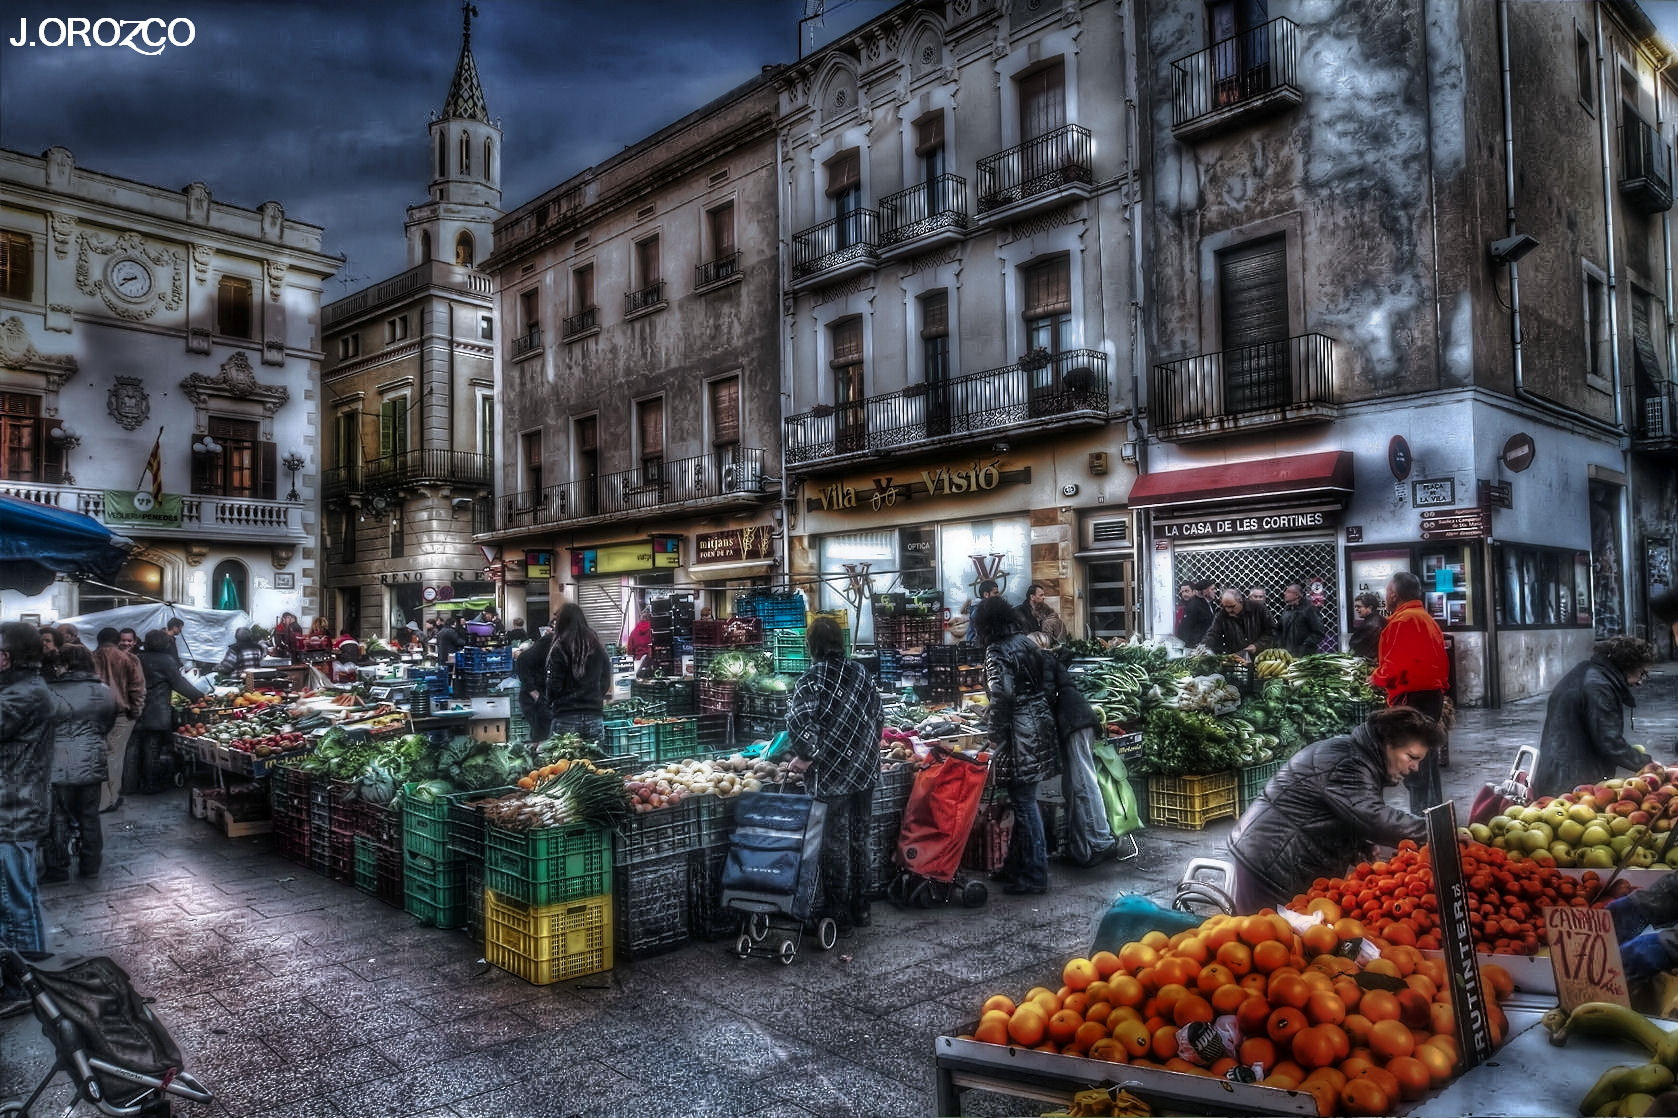 Photograph Dia de mercado. by jose orozco on 500px